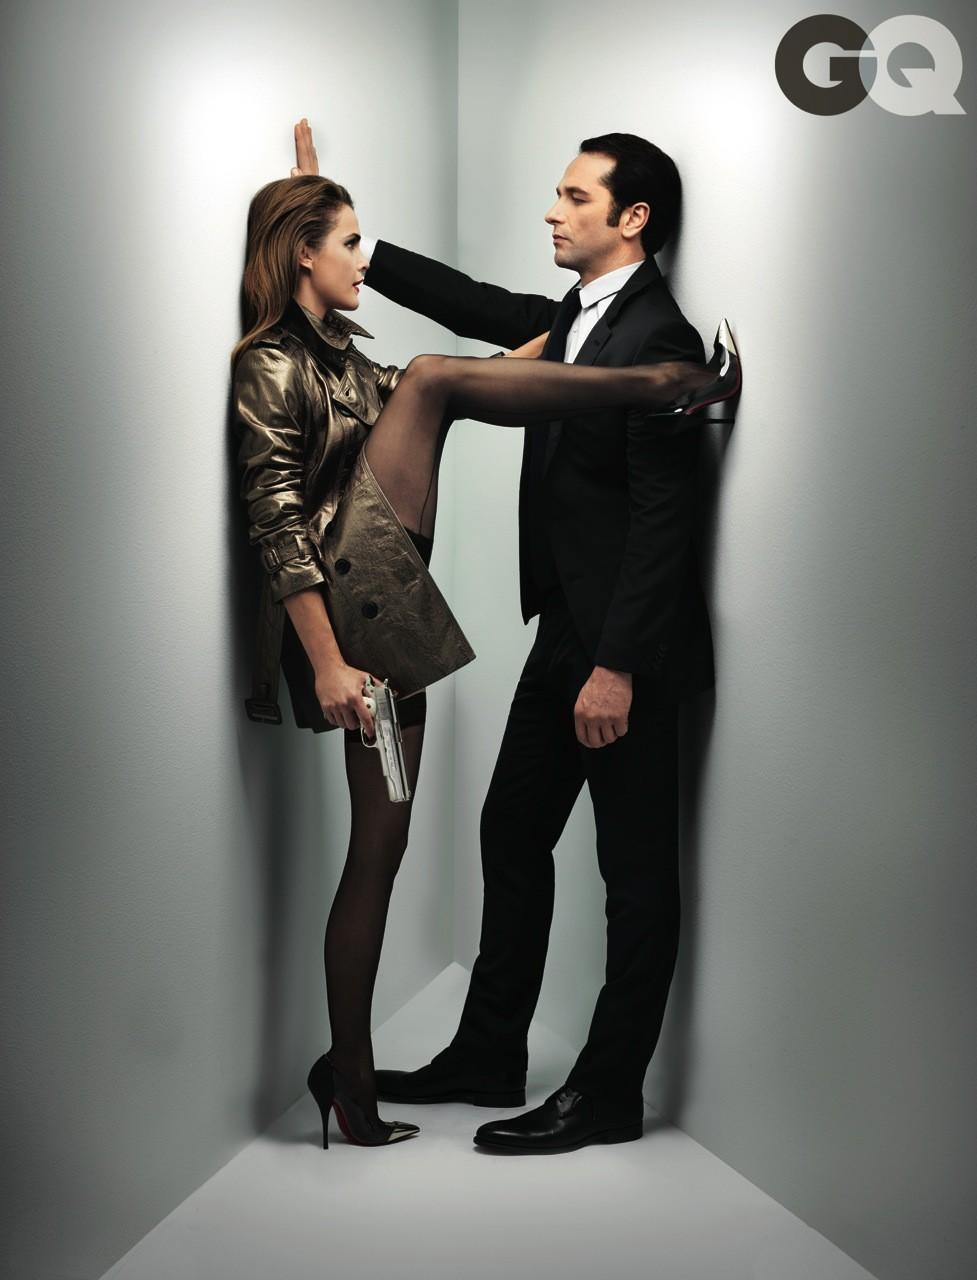 """The Americans"" stars Keri Russell and Matthew Rhys pose in the February issue of GQ."